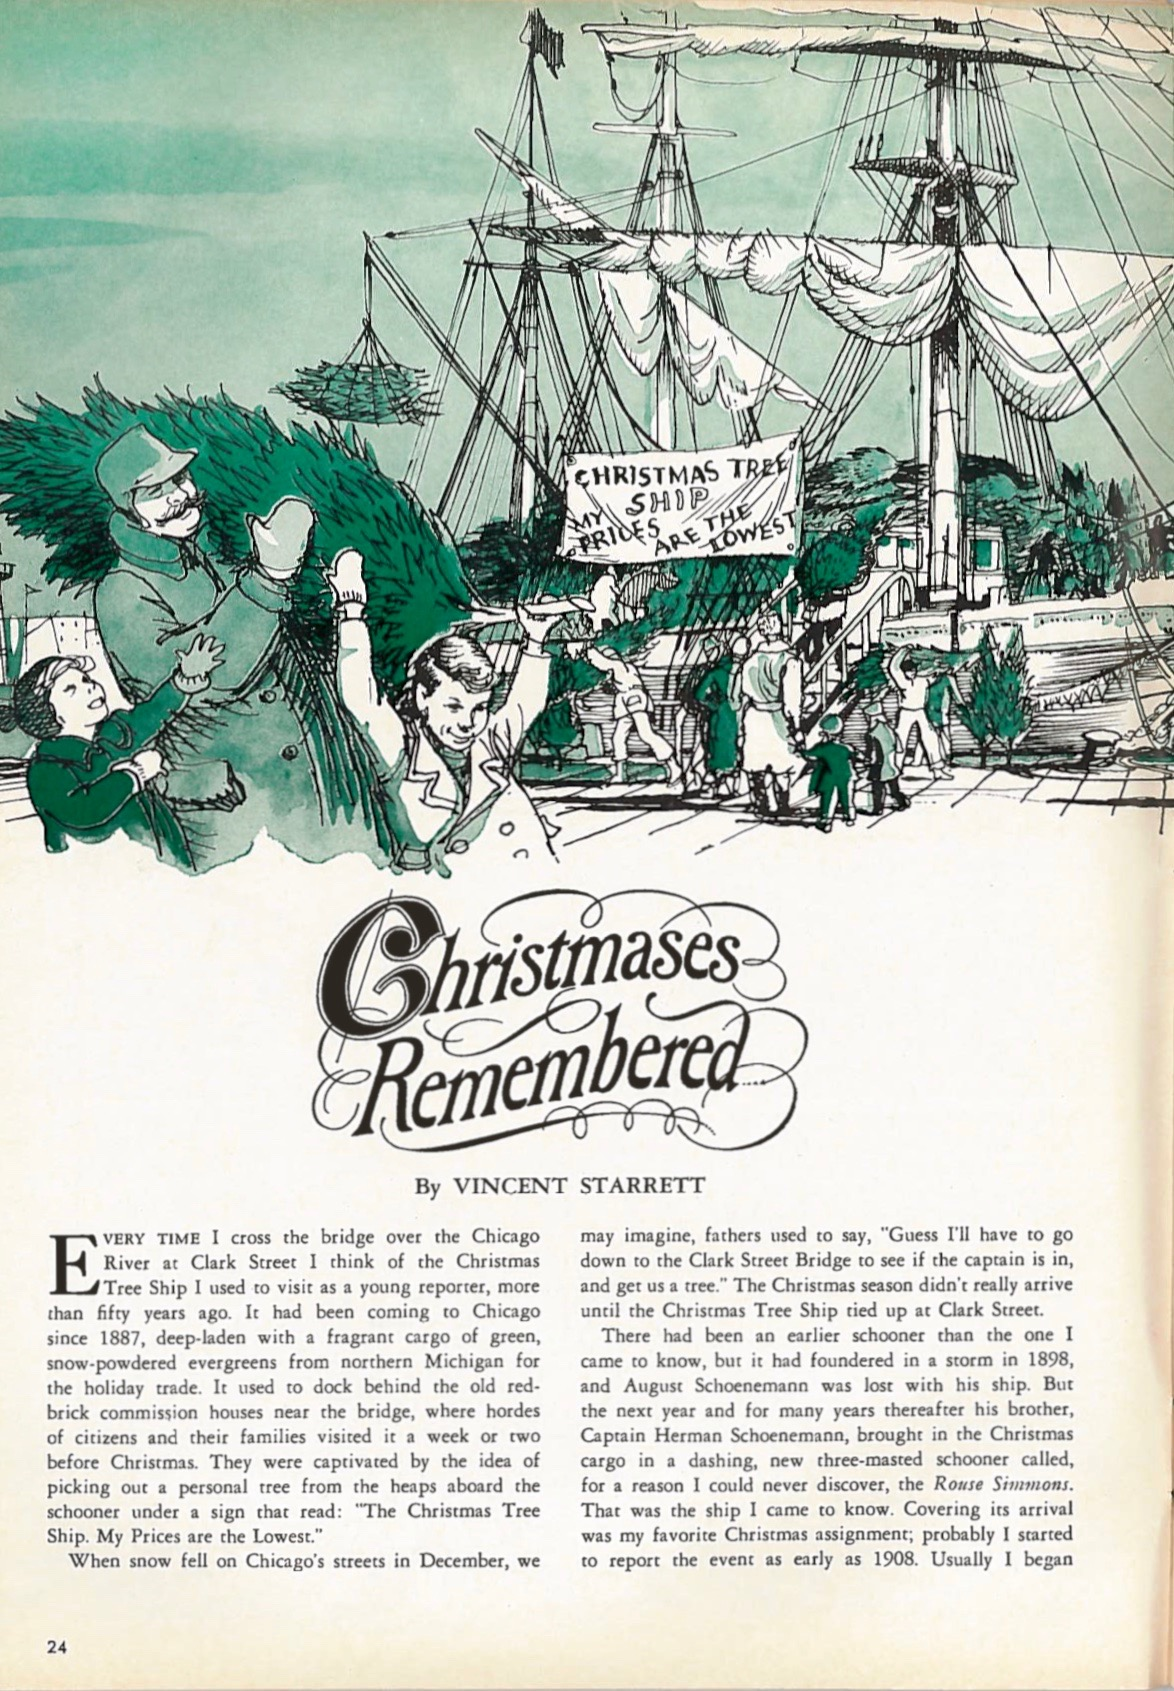 The opening page of Starrett's Christmas feature.